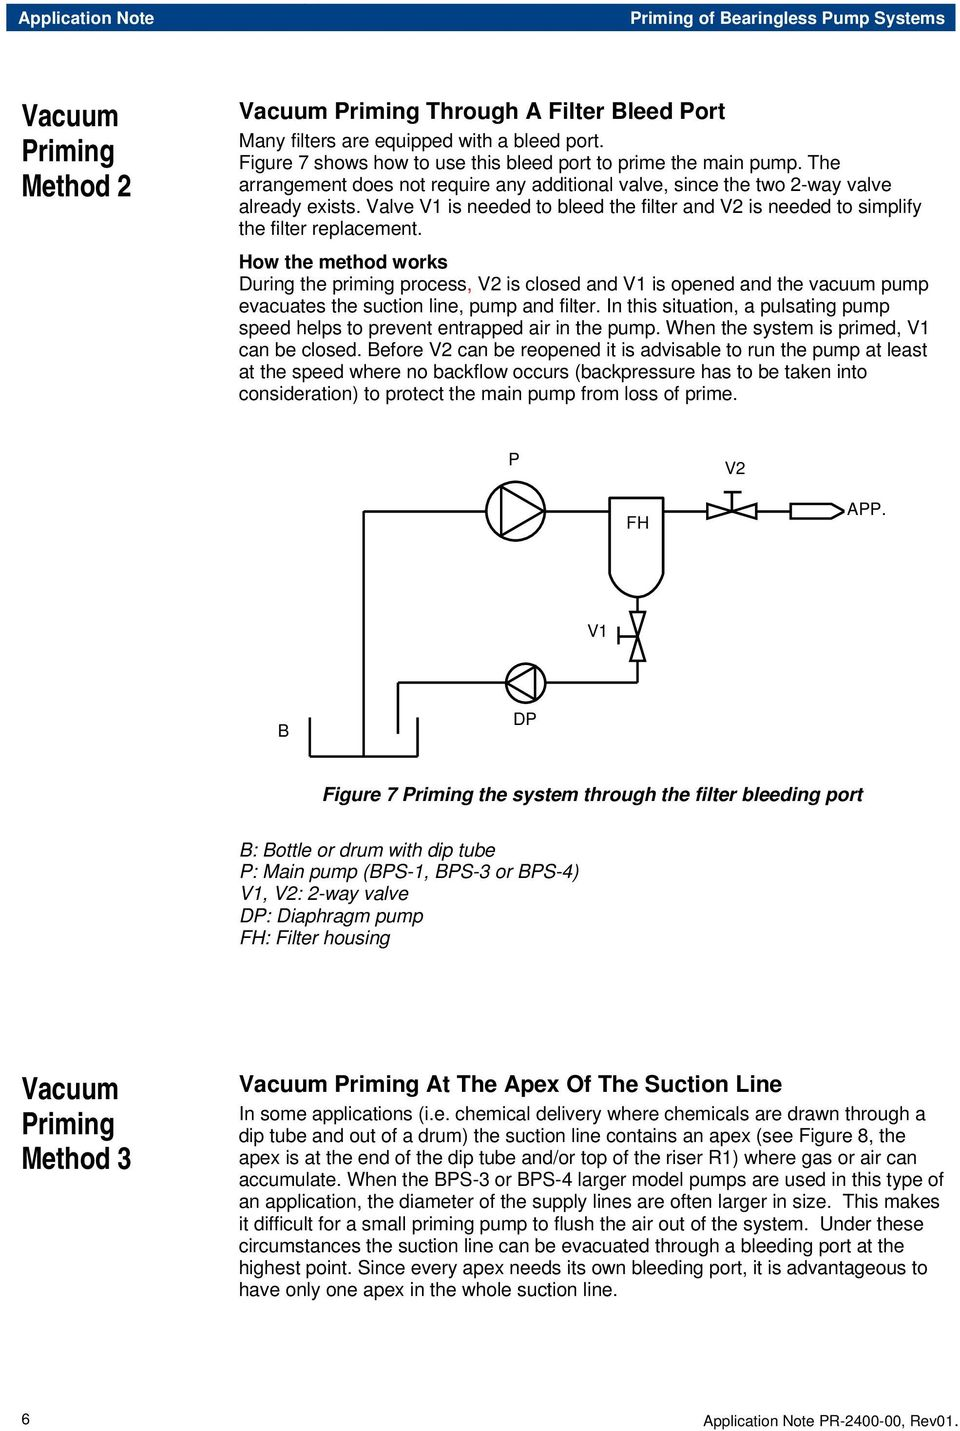 How the method works During the priming process, 2 is closed and 1 is opened and the vacuum pump evacuates the suction line, pump and filter.